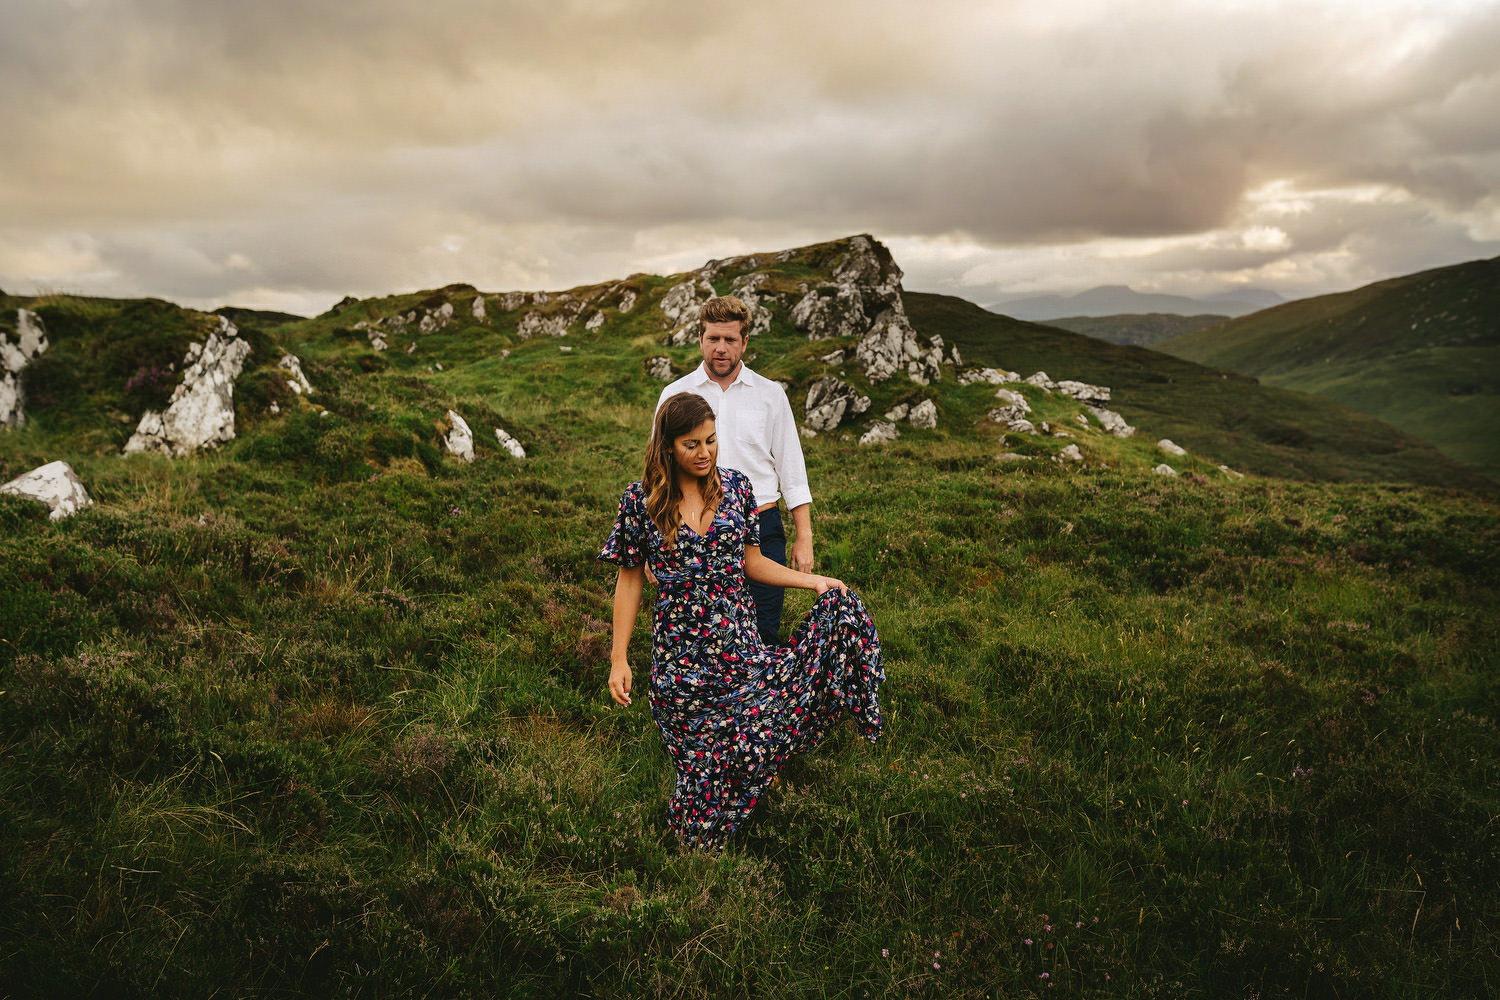 Ireland Engagement Shoot in Donegal. Deanna Smith and Declan Col. Irish American Elopement.